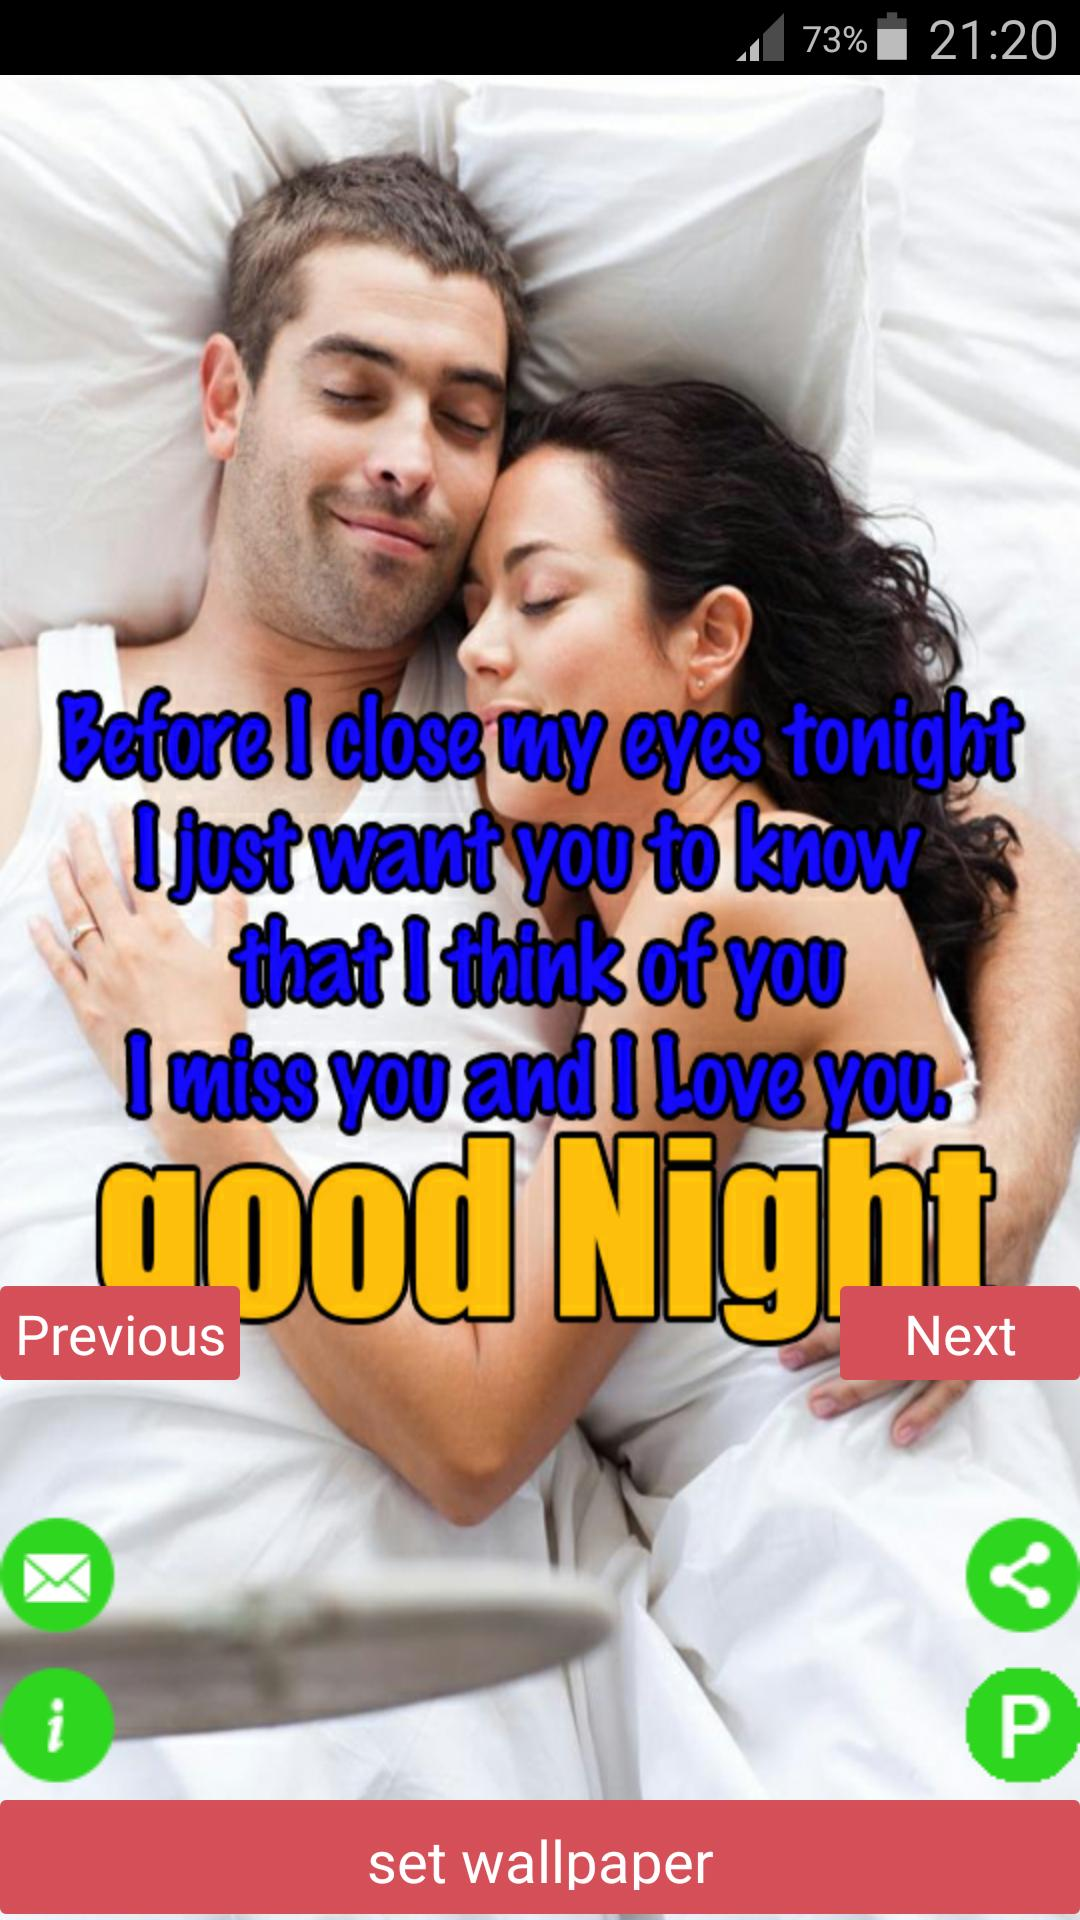 Romantic Couples Good Night HD Images & Messages for Android